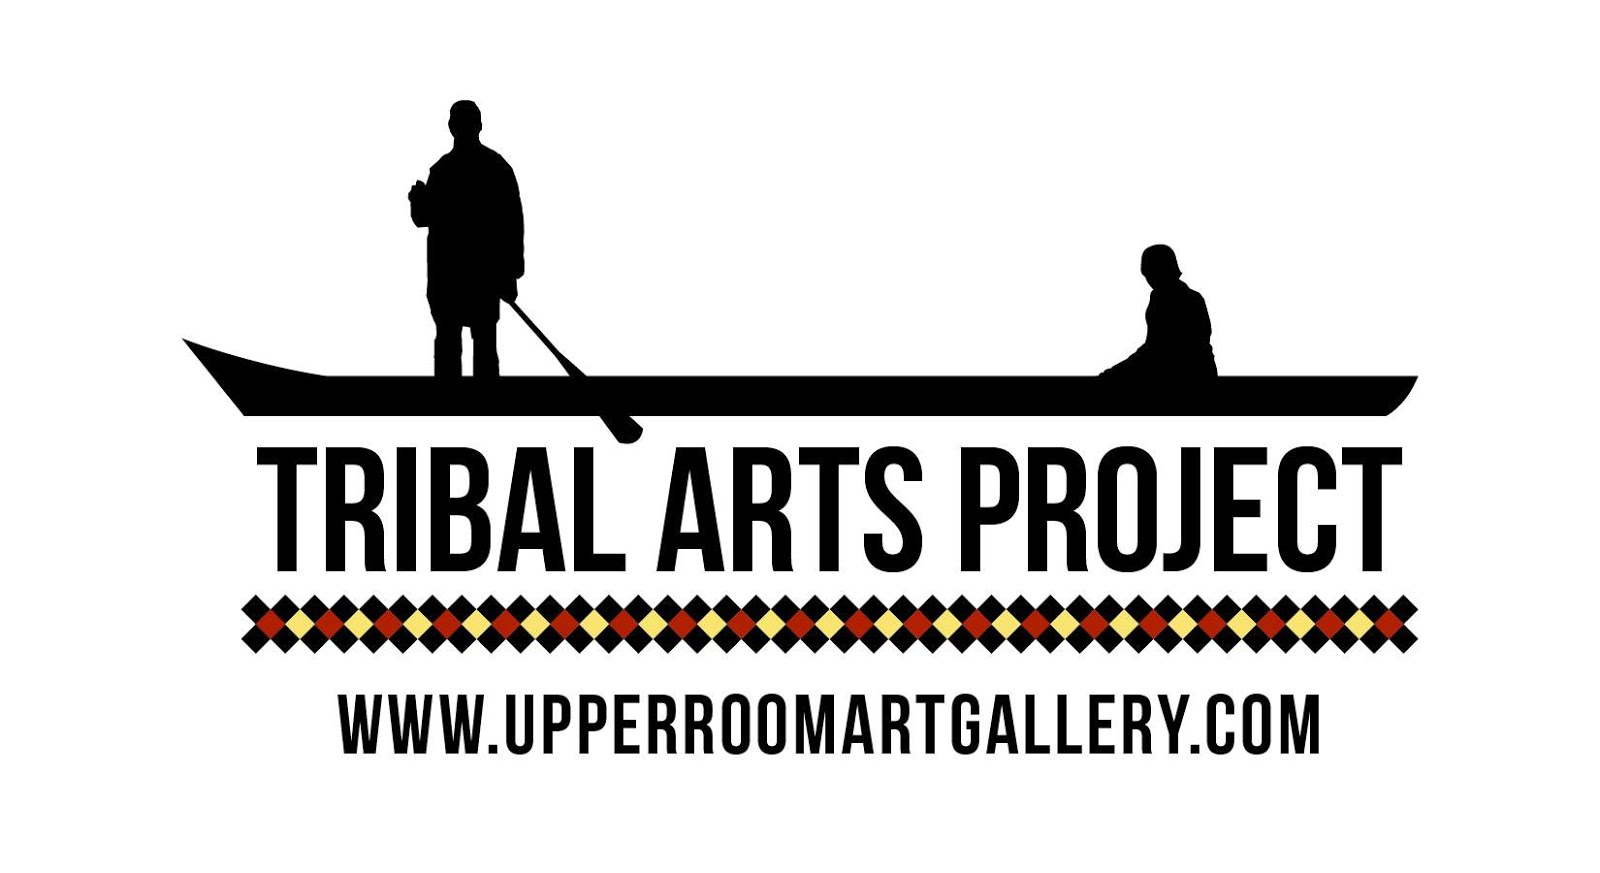 Tribal Arts Project